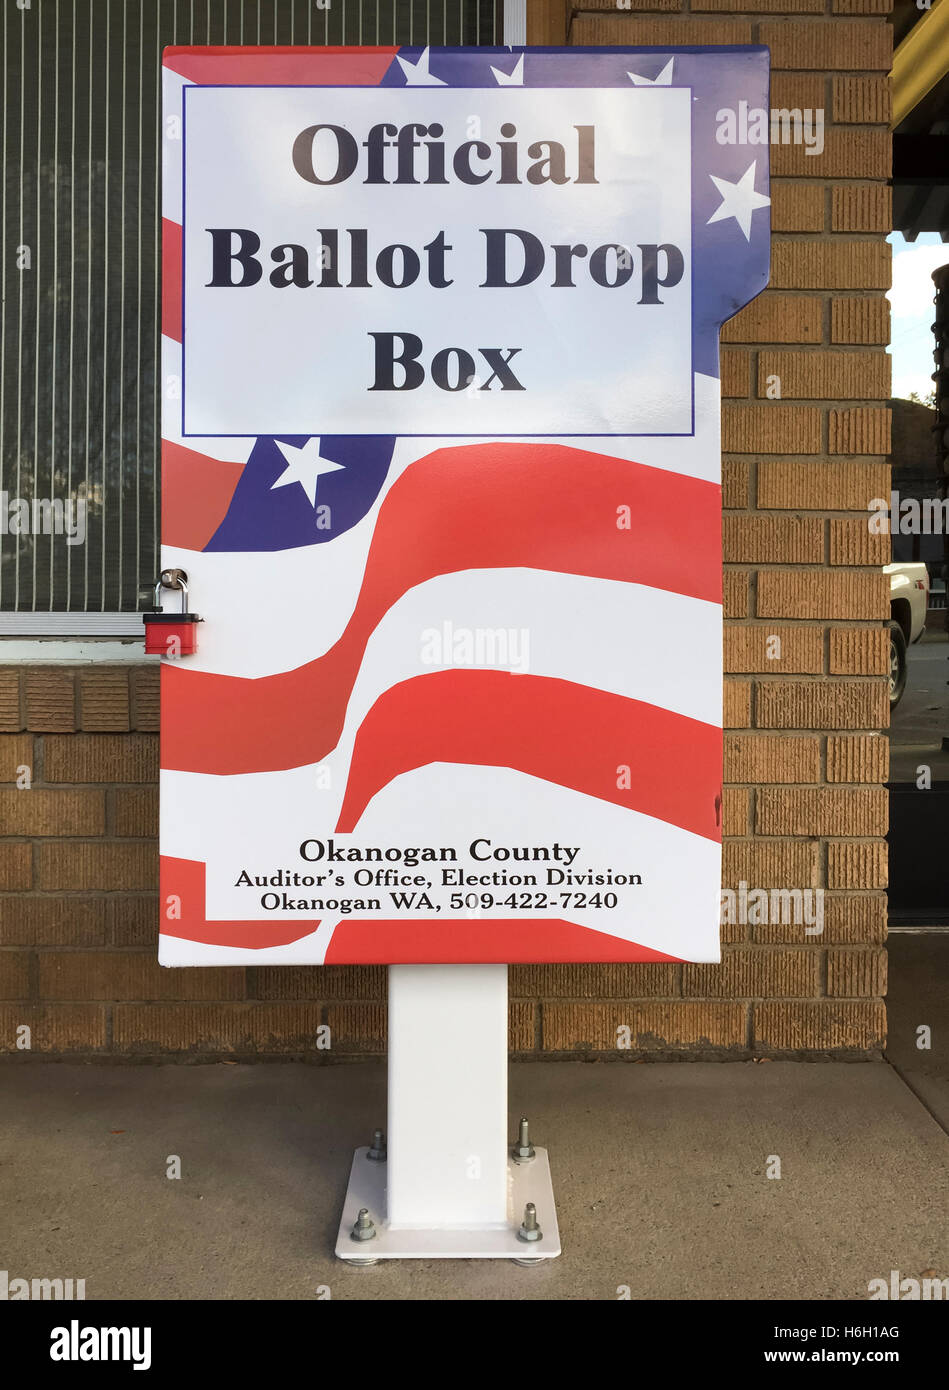 United States secure official elections voting ballot drop box on public sidewalk - Stock Image